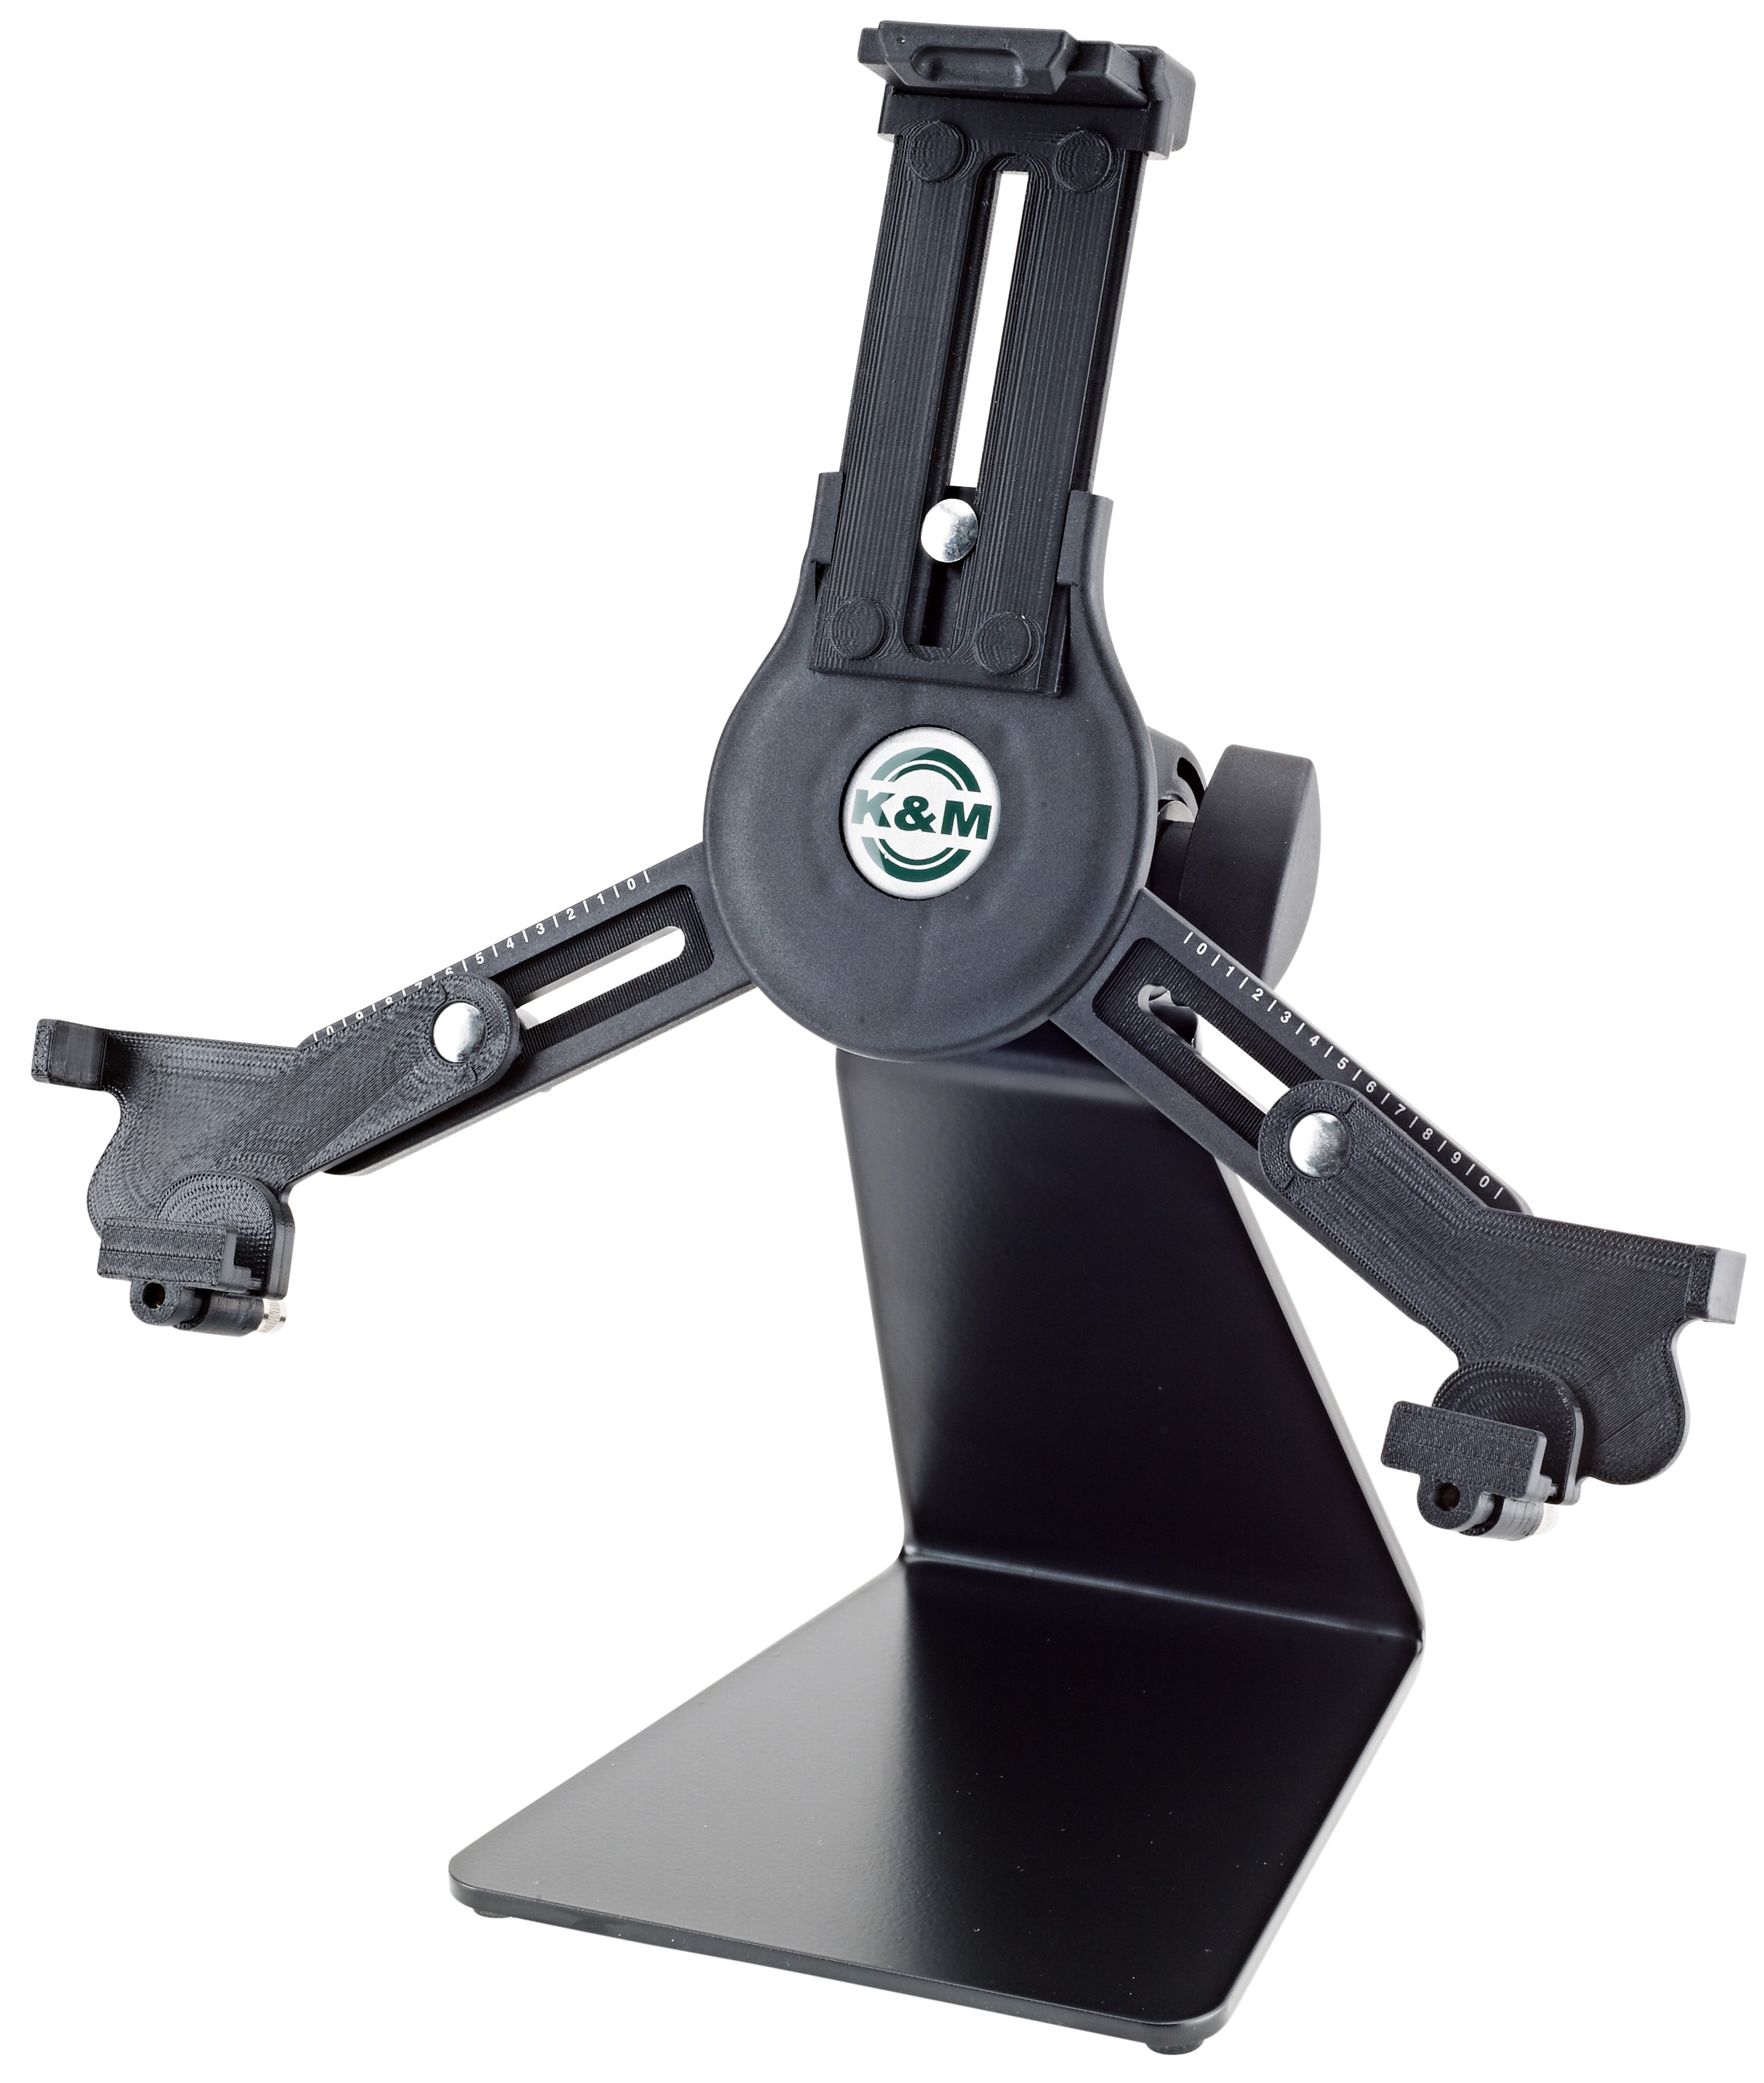 K&M Tablet PC table stand